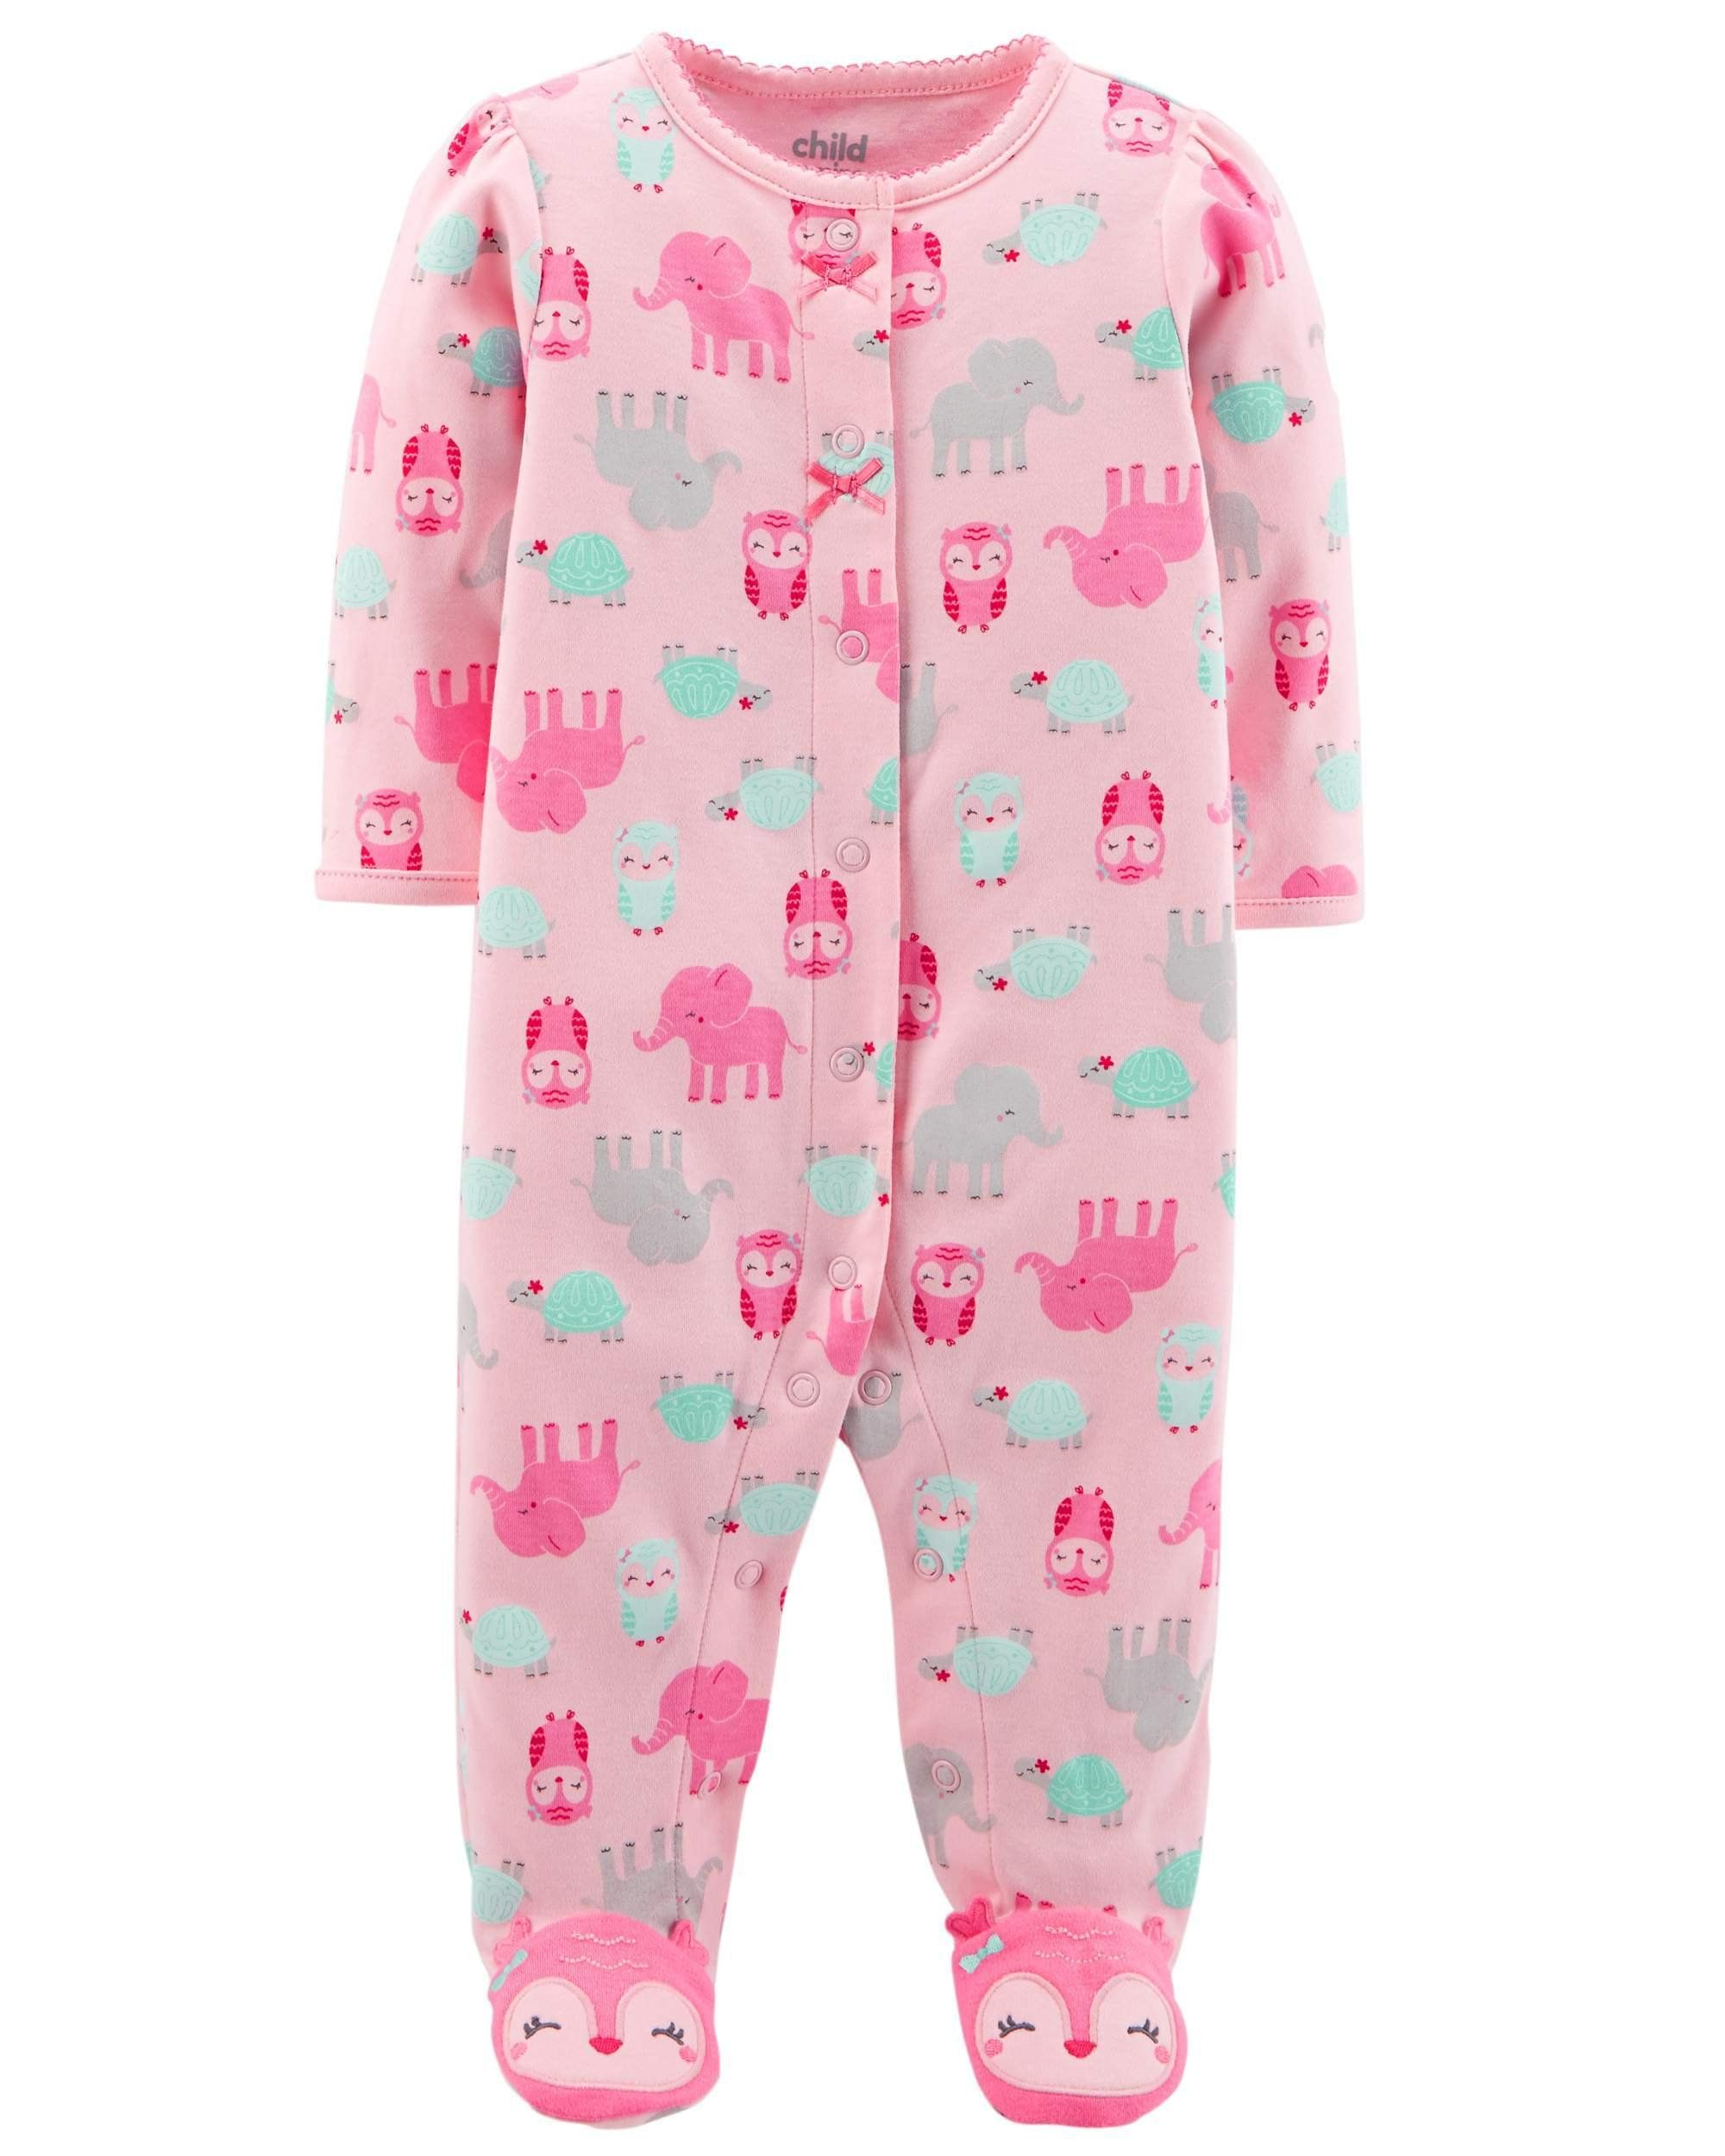 006946ca4 Child of Mine Carters Preemie Baby Girl Sleepers Pajamas Sleep n ...